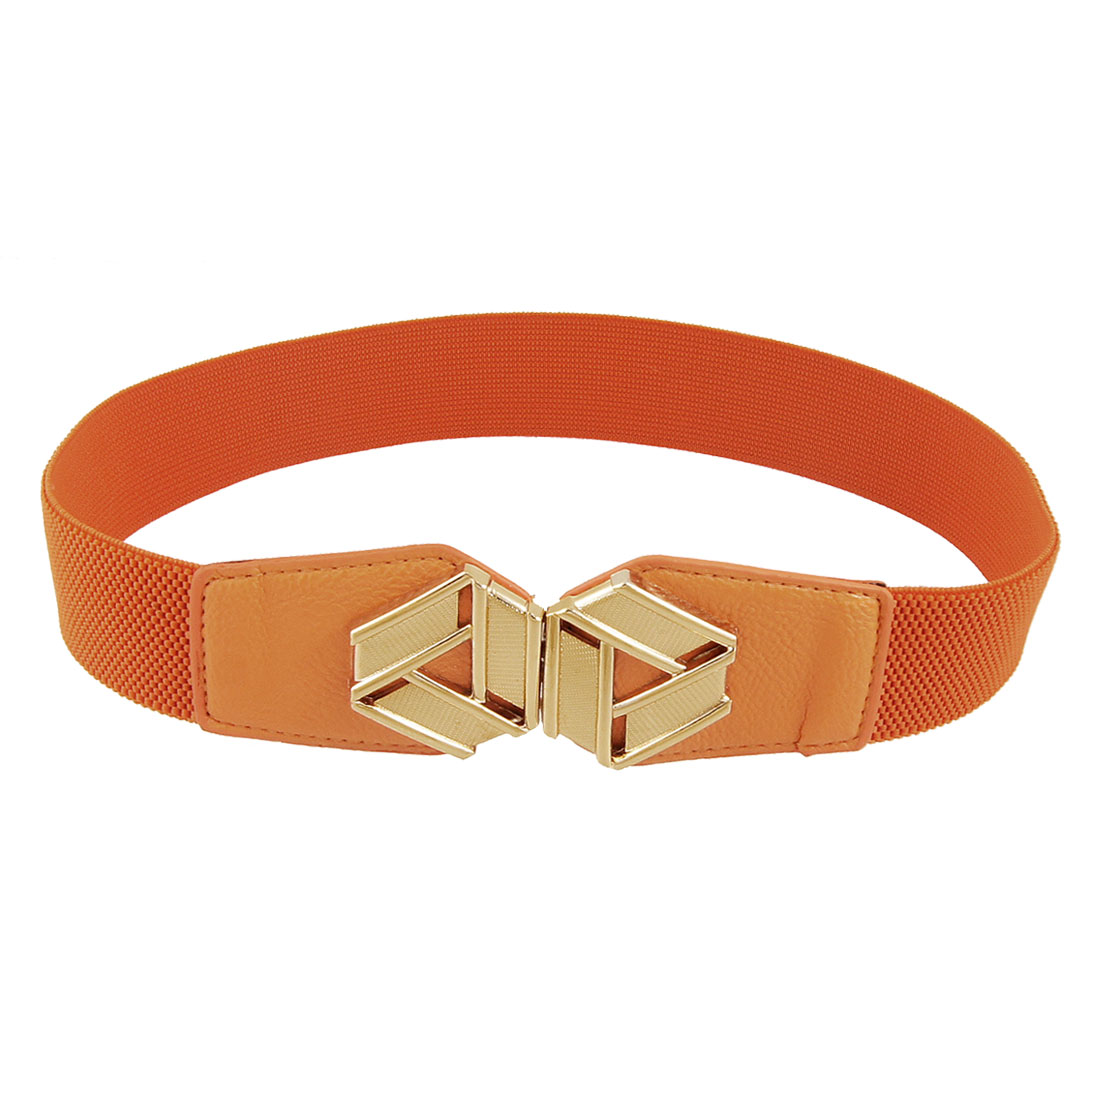 Gold Tone Metal Interlocking Buckle Orange Stretchy Cinch Belt for Woman